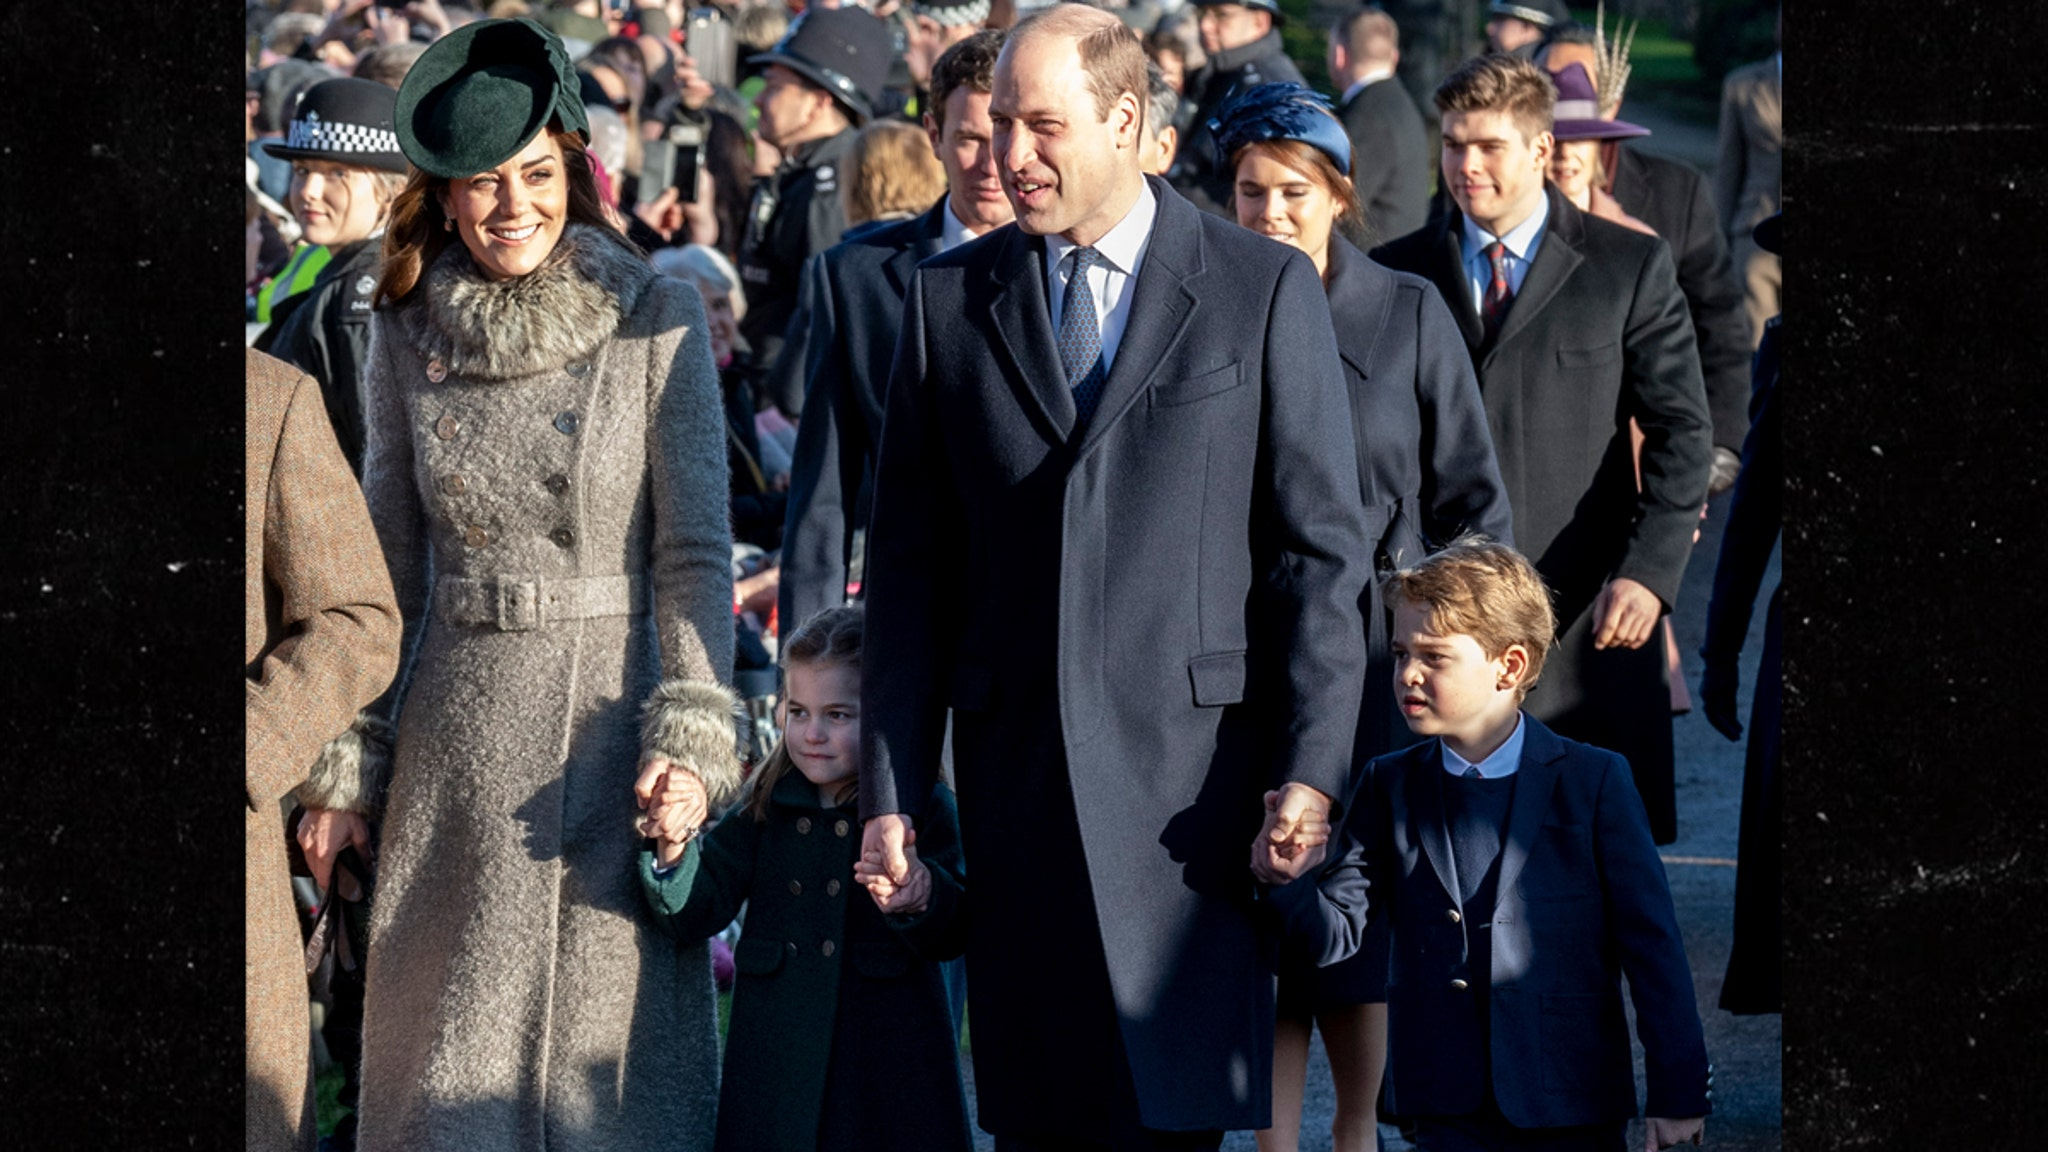 Prince William, Kate, George and Charlotte Celebrate Christmas in Church